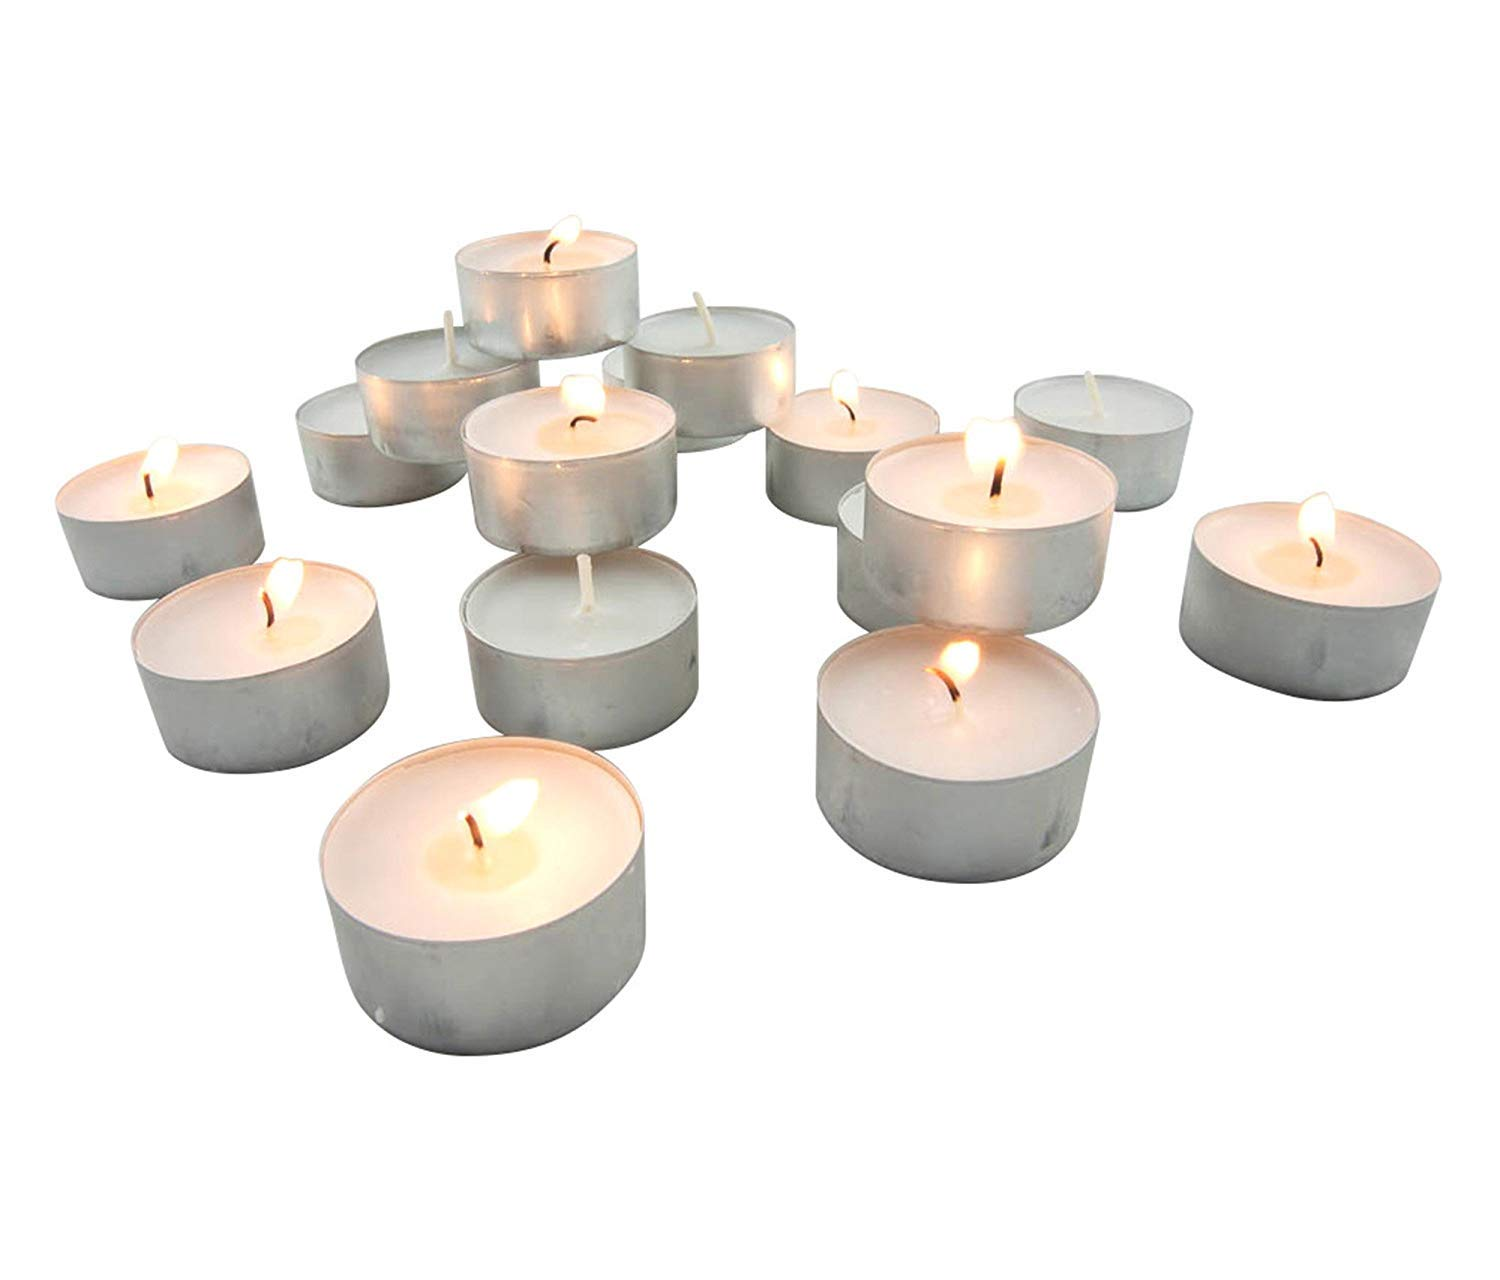 Stonebriar Long Burning Tealight Candles, 6 to 7 Hour Extended Burn Time, Bulk 345-Pack (345 Pack)